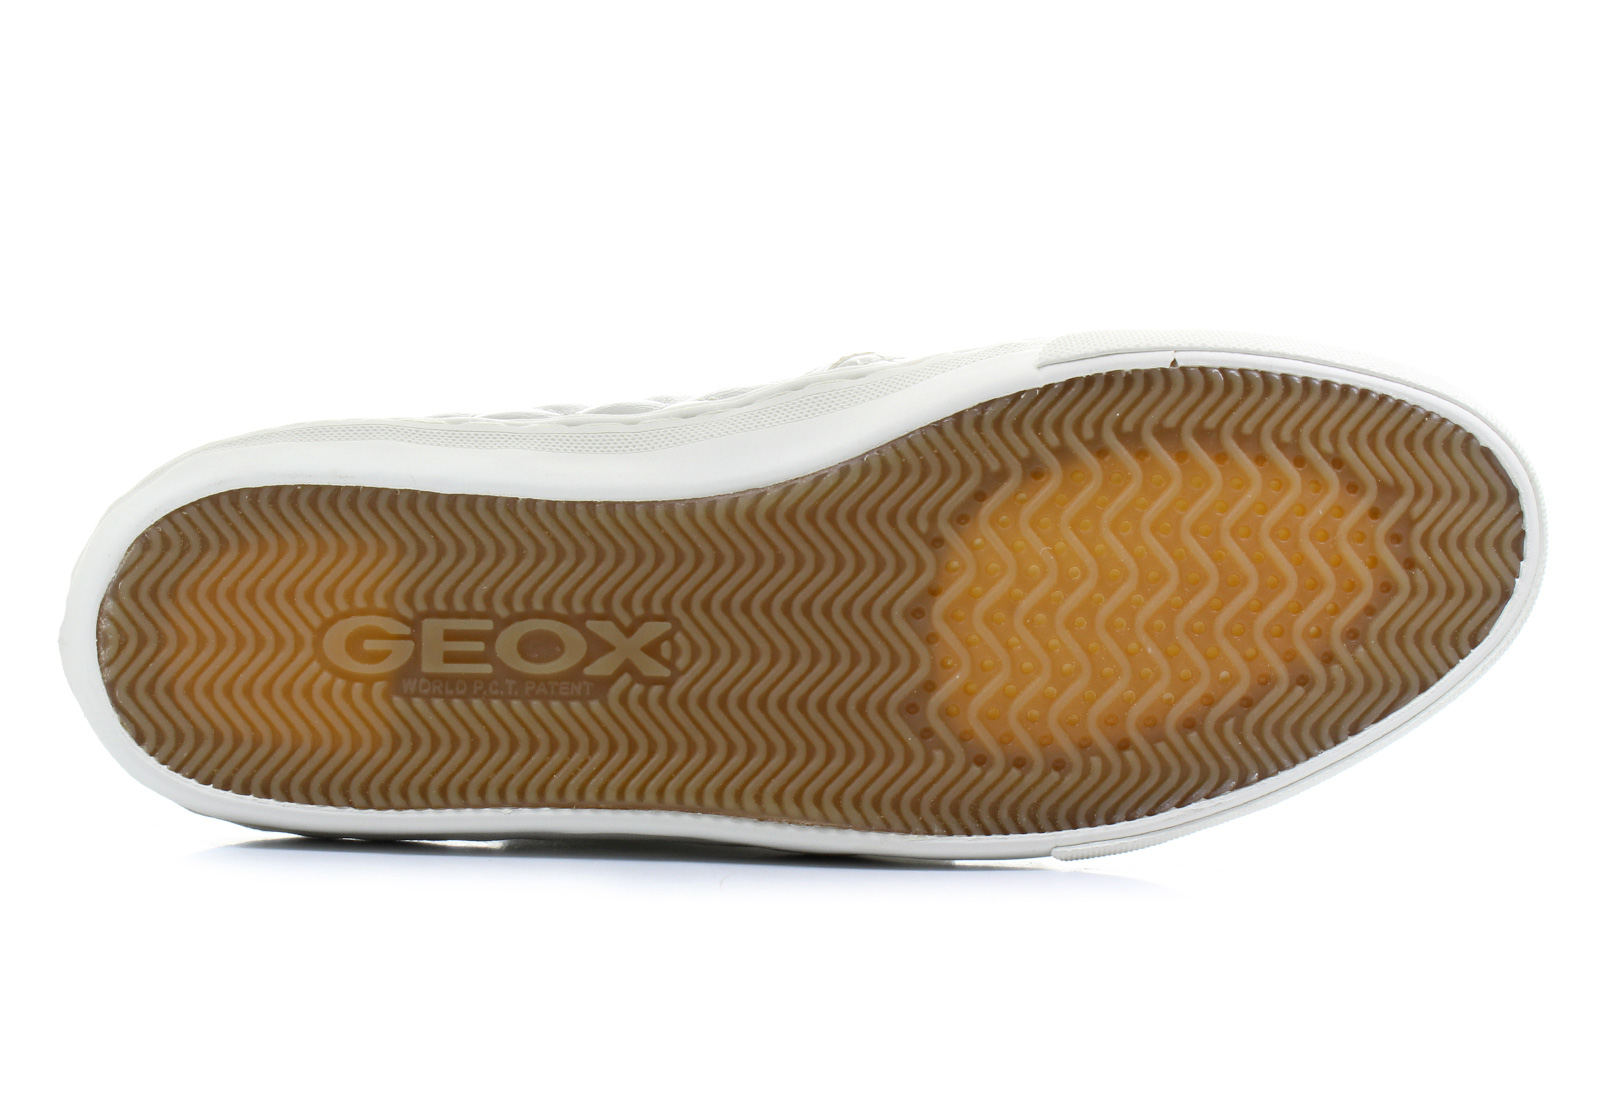 Geox Slip-on - New Club Slip-on - 58C-00NF-1000 - Online shop for ... 03d9c11887